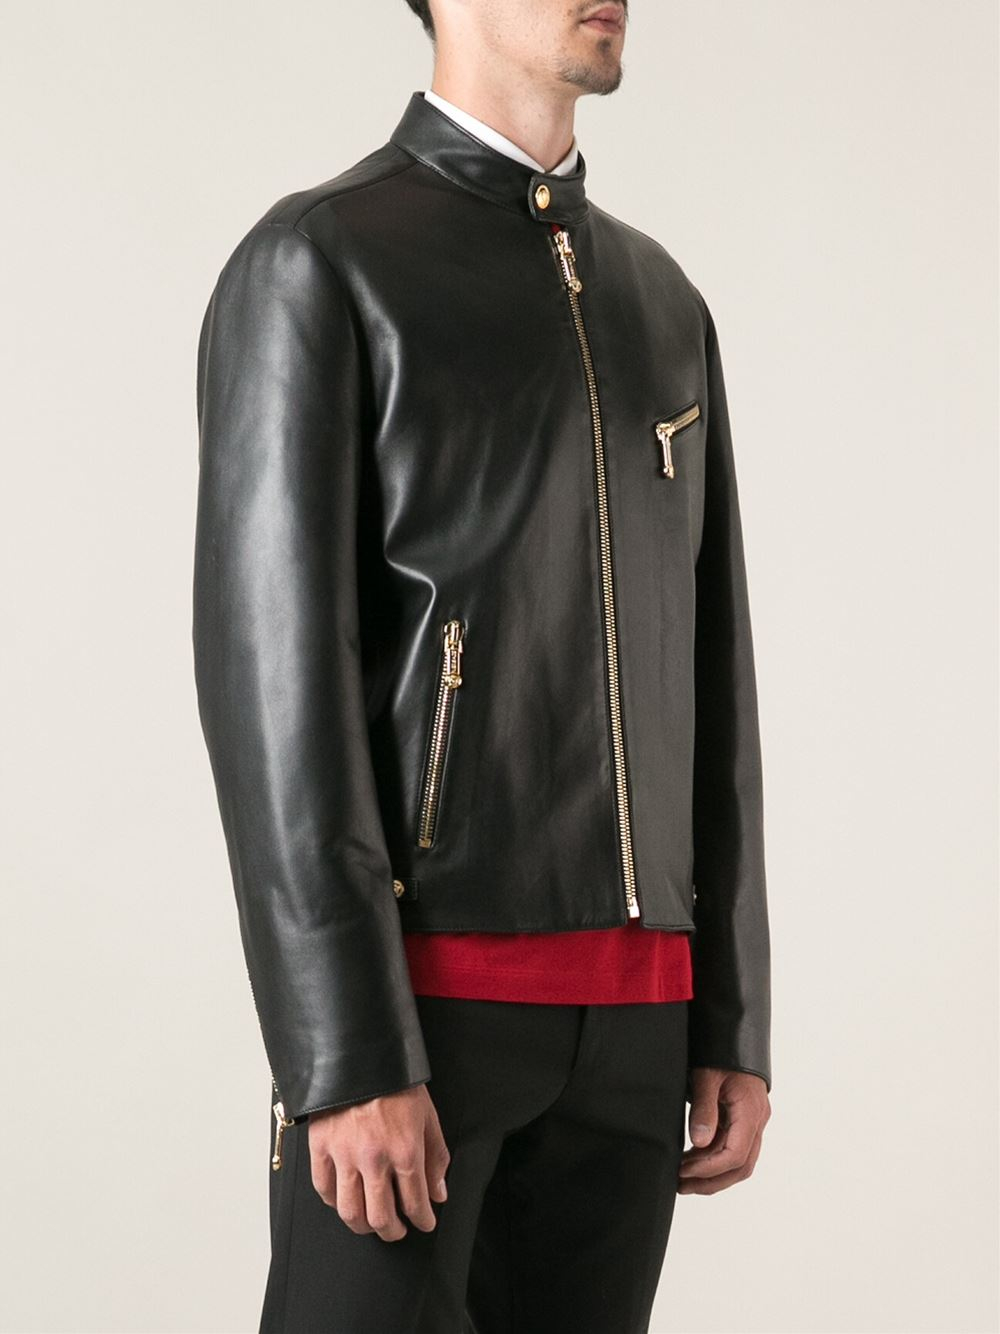 Nike Windrunner Jacket Black Versace Classic Leather Jacket In Black For Men Lyst